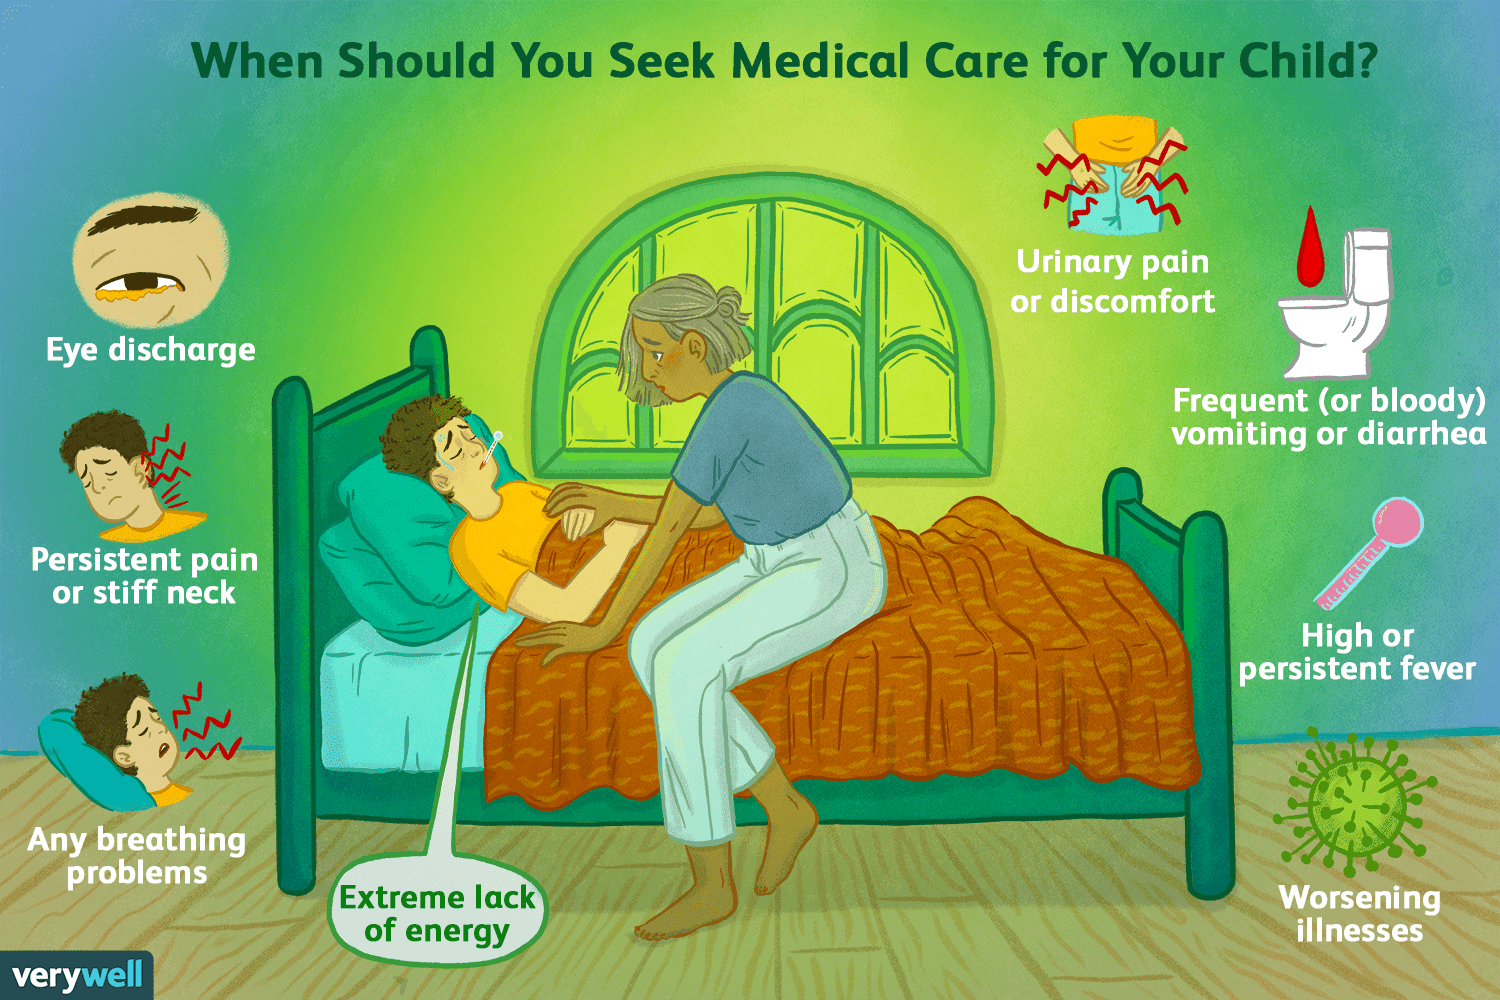 When to Seek Medical Care for Your Child